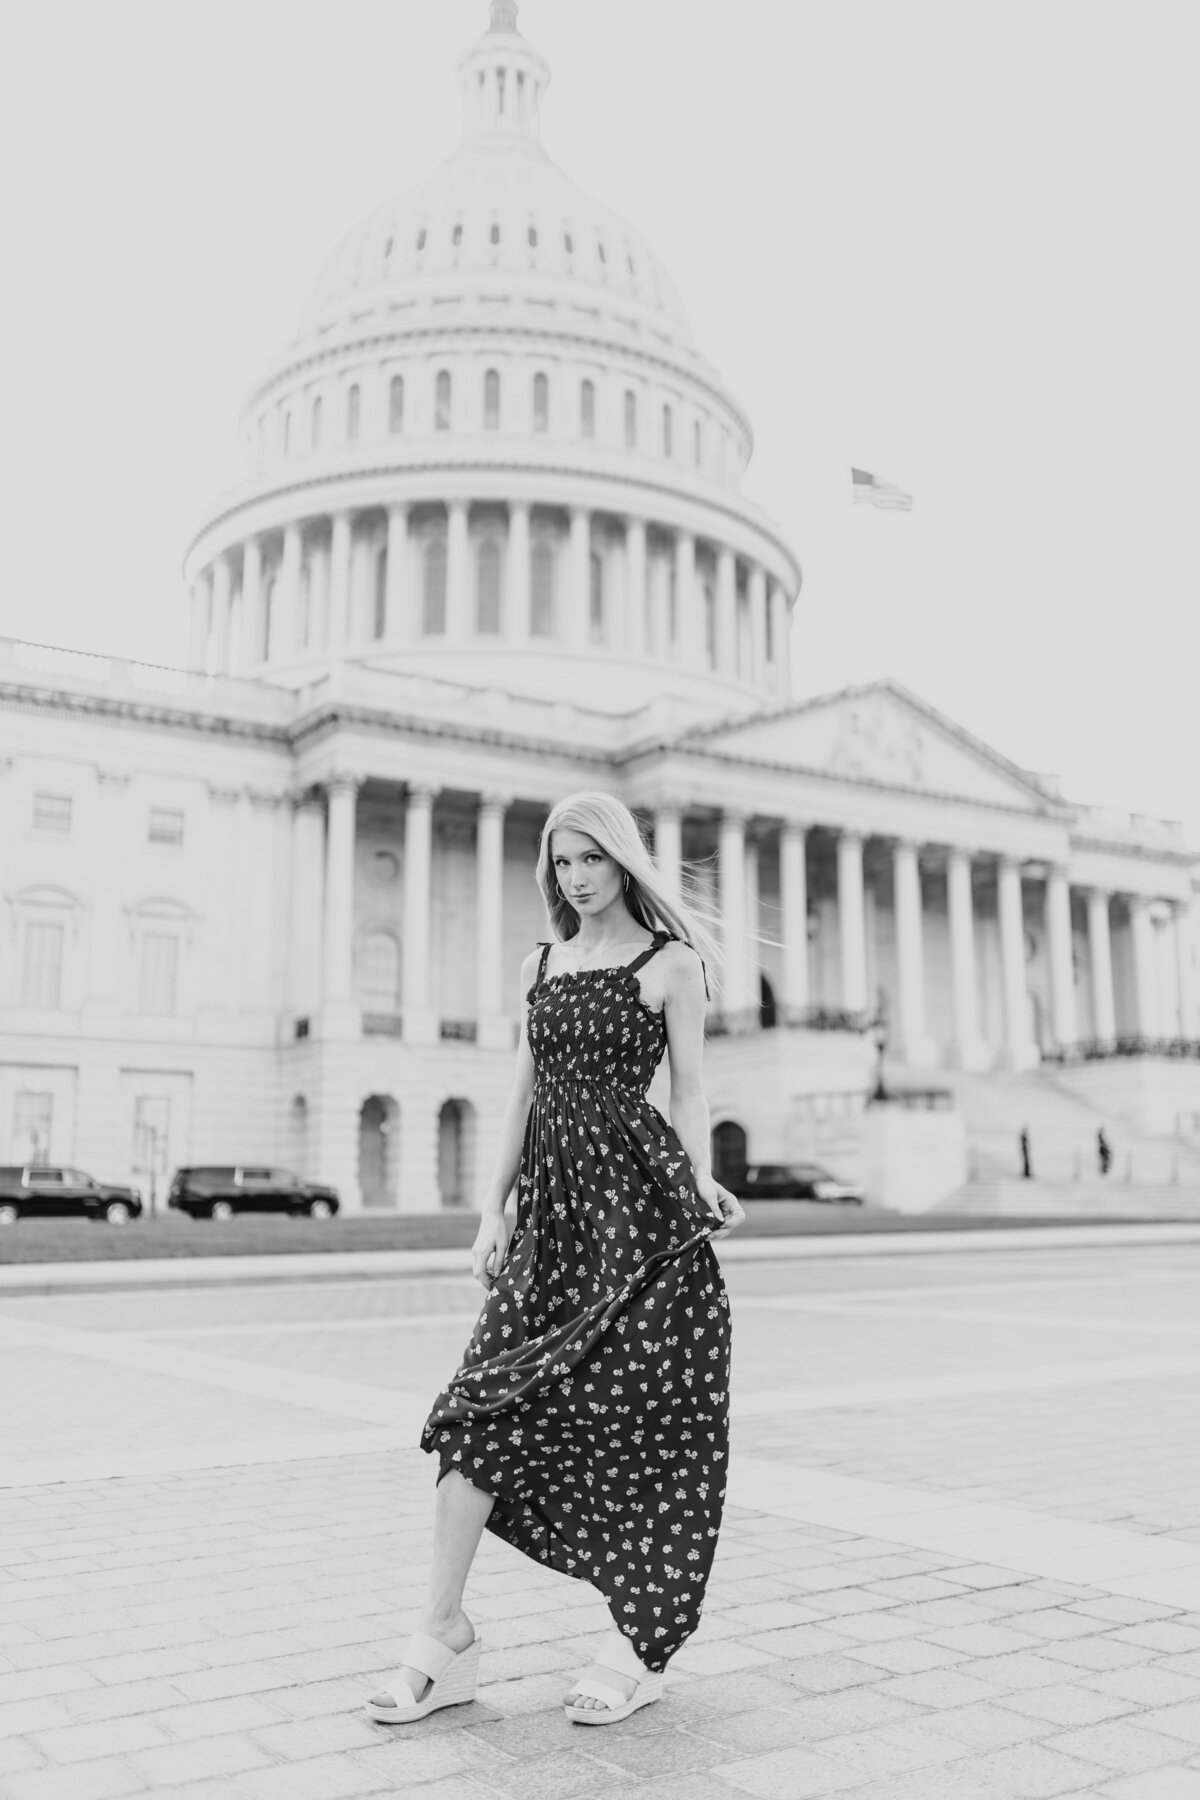 LibraryofCongress_USCapitol_WashingtonDC_Virginia_Senior_Portrait_Session_AngelikaJohnsPhotography-1394-2